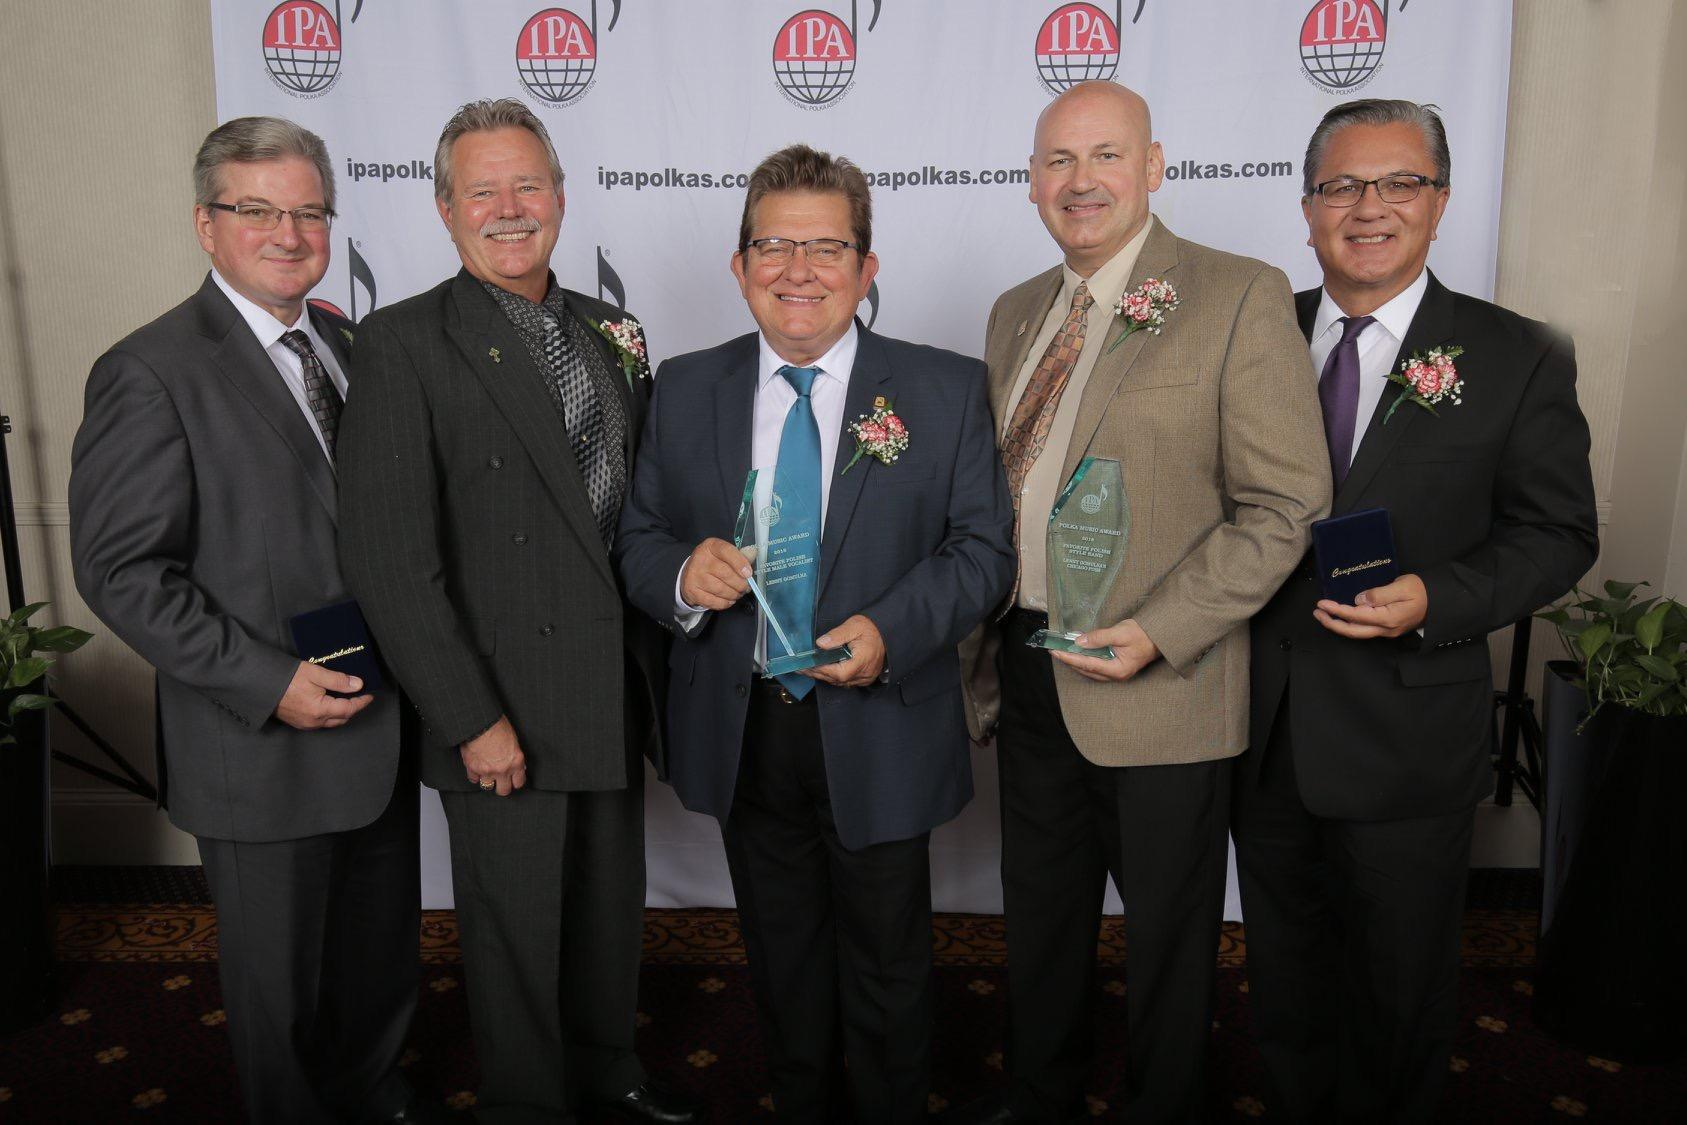 Top row: Lenny Gomulka and the Chicago Push received the award for Favorite Polish-Style Band. Lenny also received the award for Favorite Polish-Style Male Vocalist. Rick Rzeszutko, Jim Sajkowicz, winner of the Leon Kozicki Trustee Award, and Fred Bulinsk